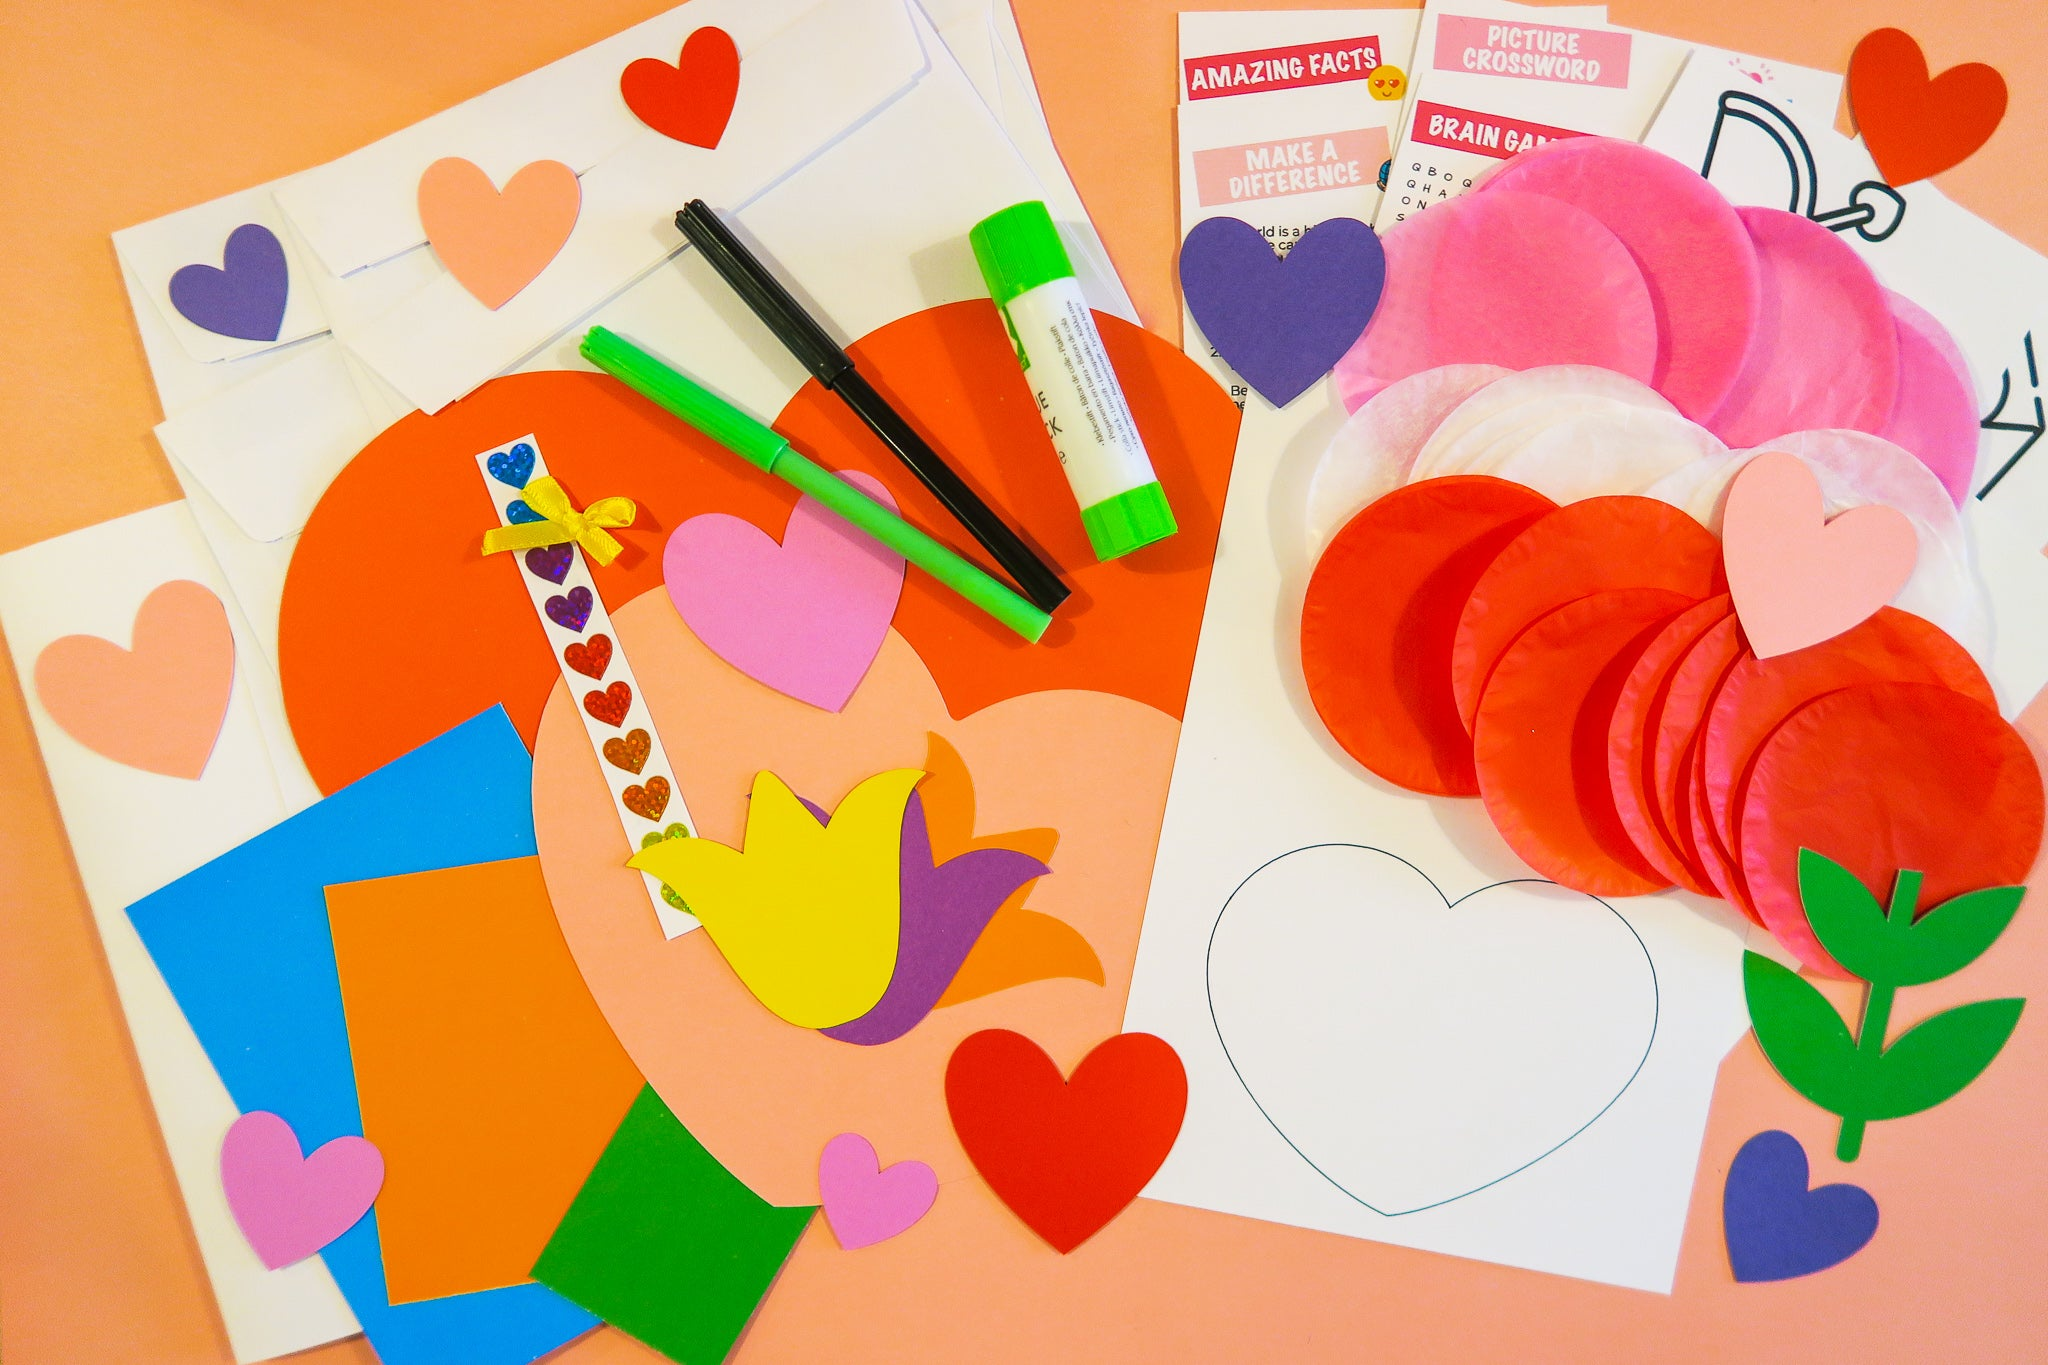 Valenties day card kit contents